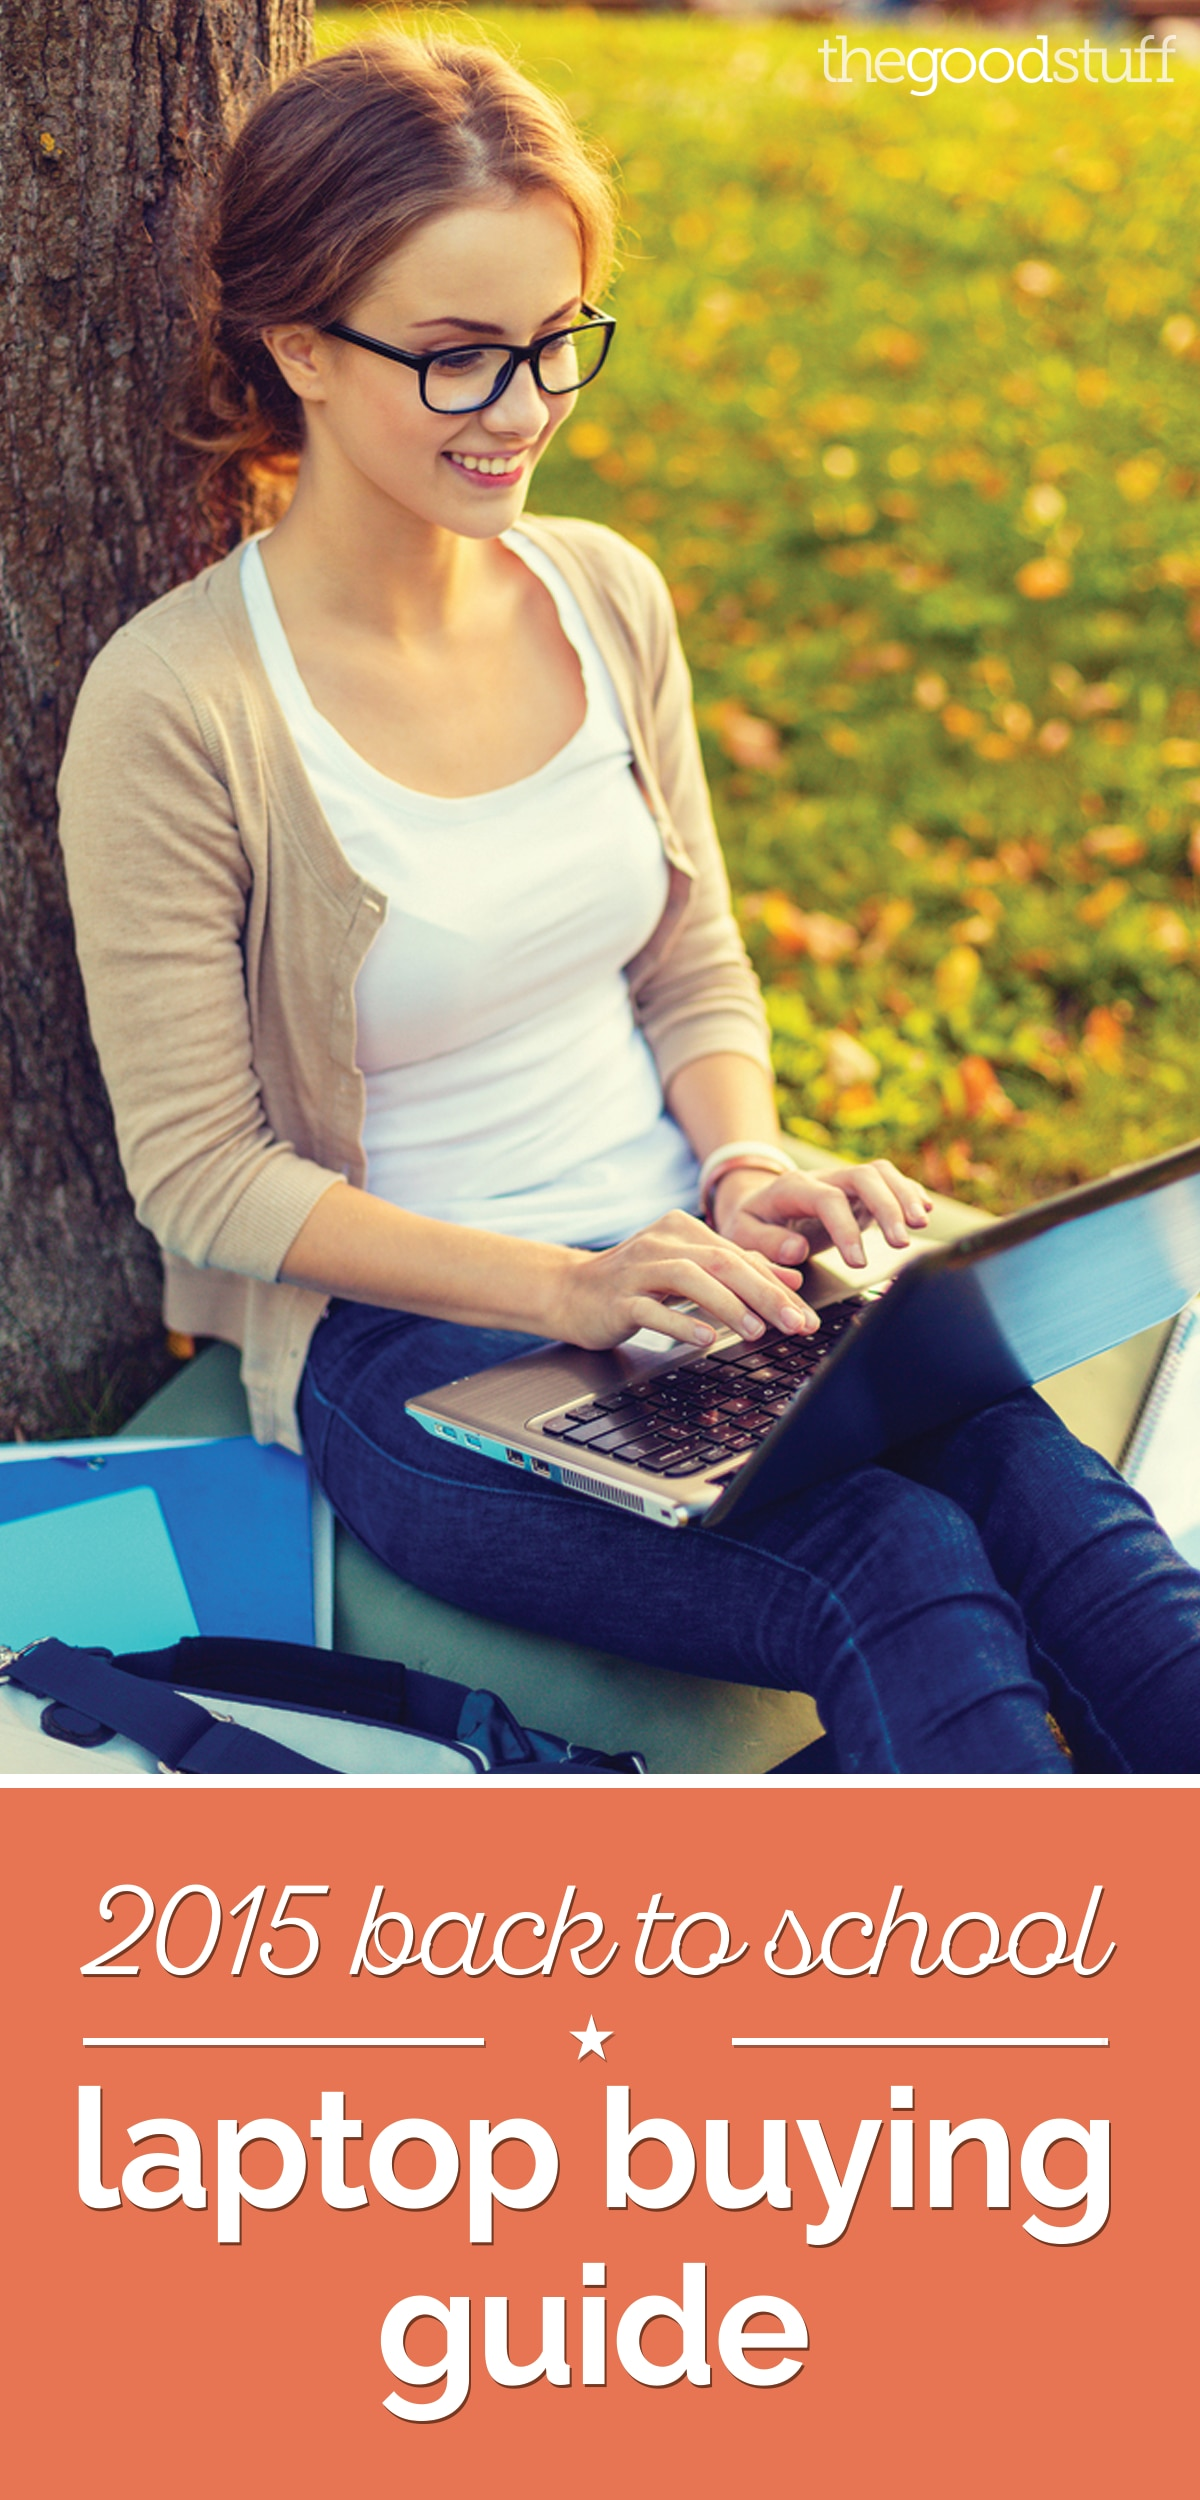 2015 Back to School Laptop Buying Guide | thegoodstuff